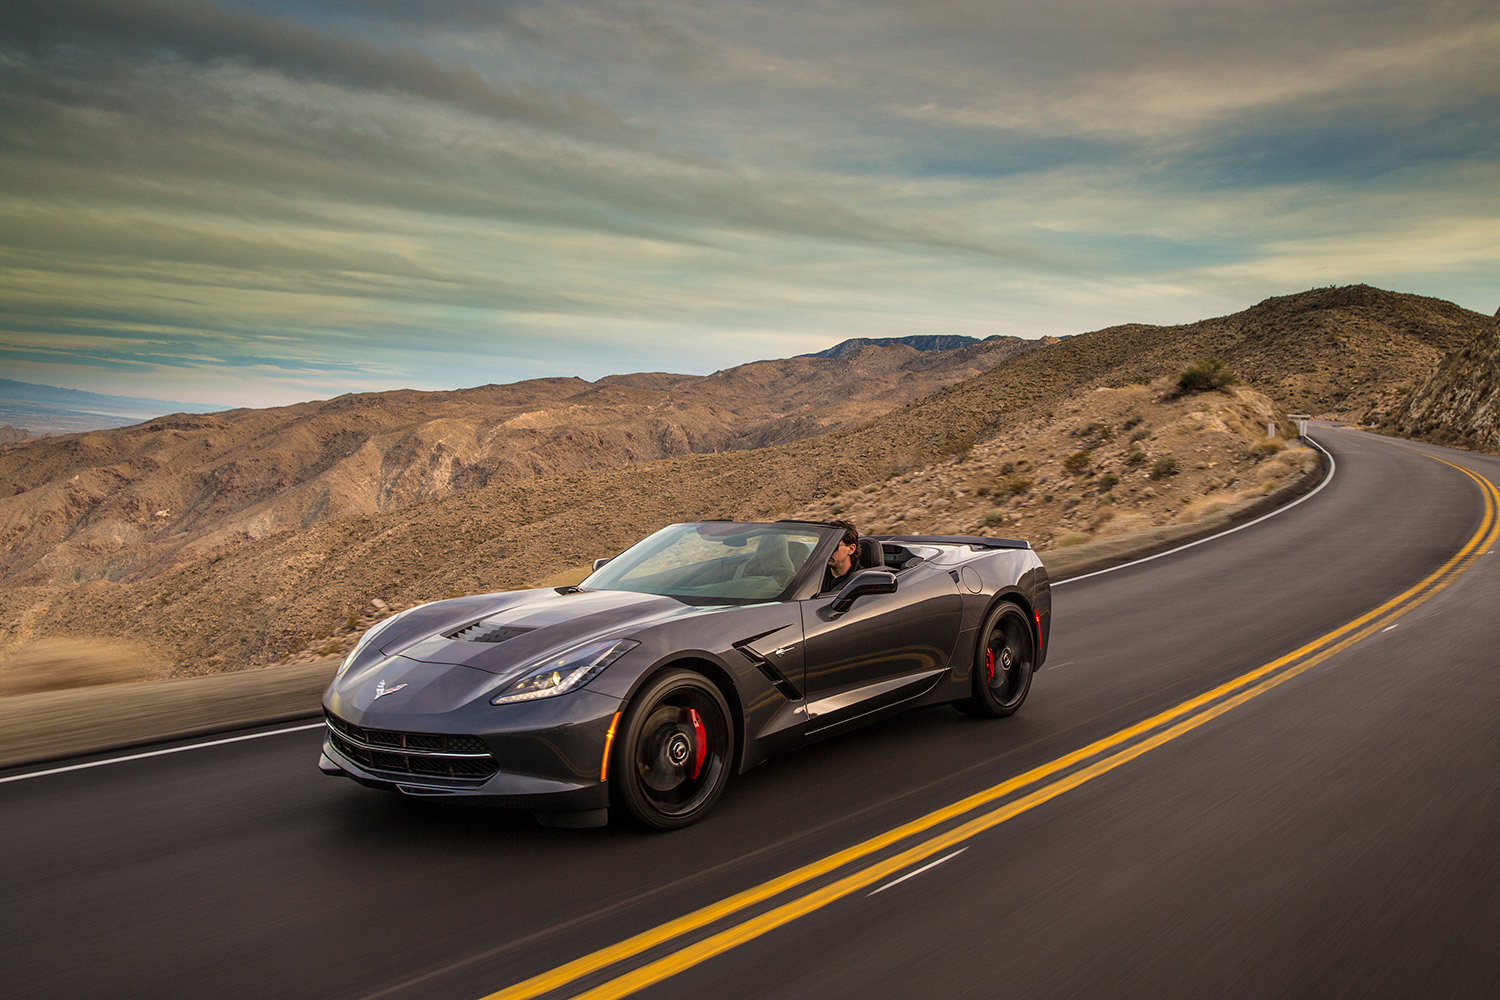 2014-chevrolet-corvette-stingray-convertible-black-front